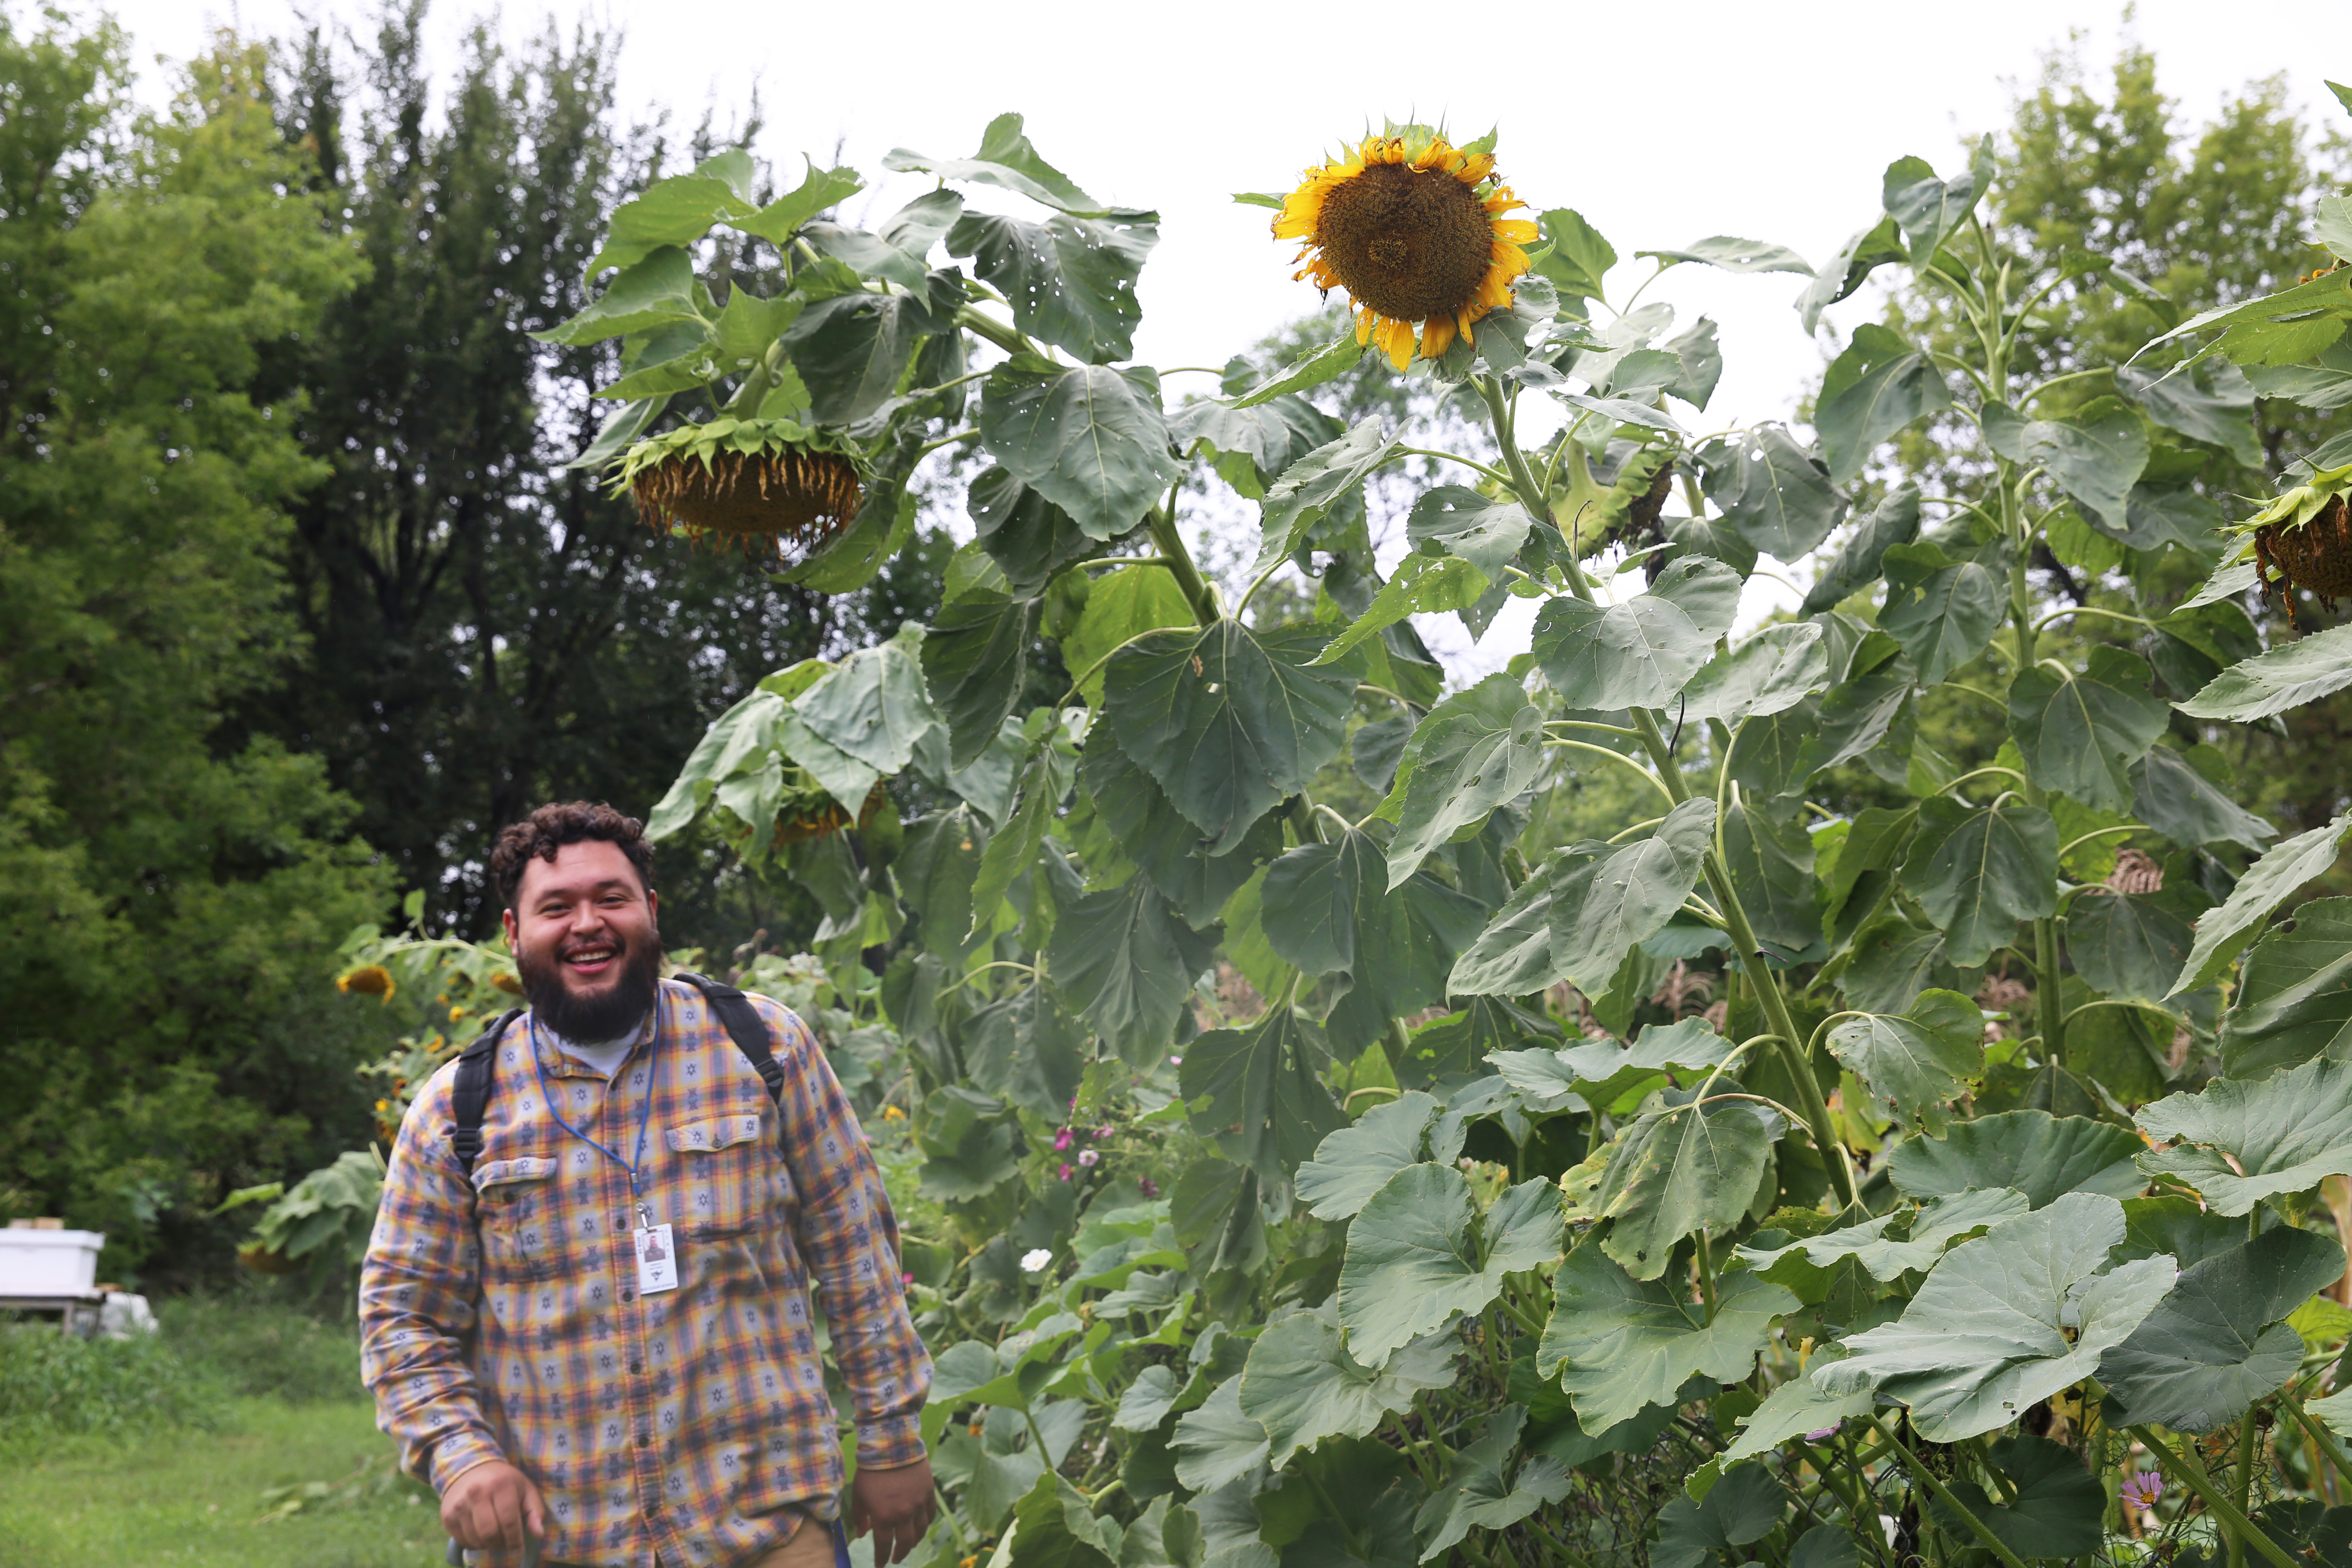 Marcus standing next to a 8 ft sunflower